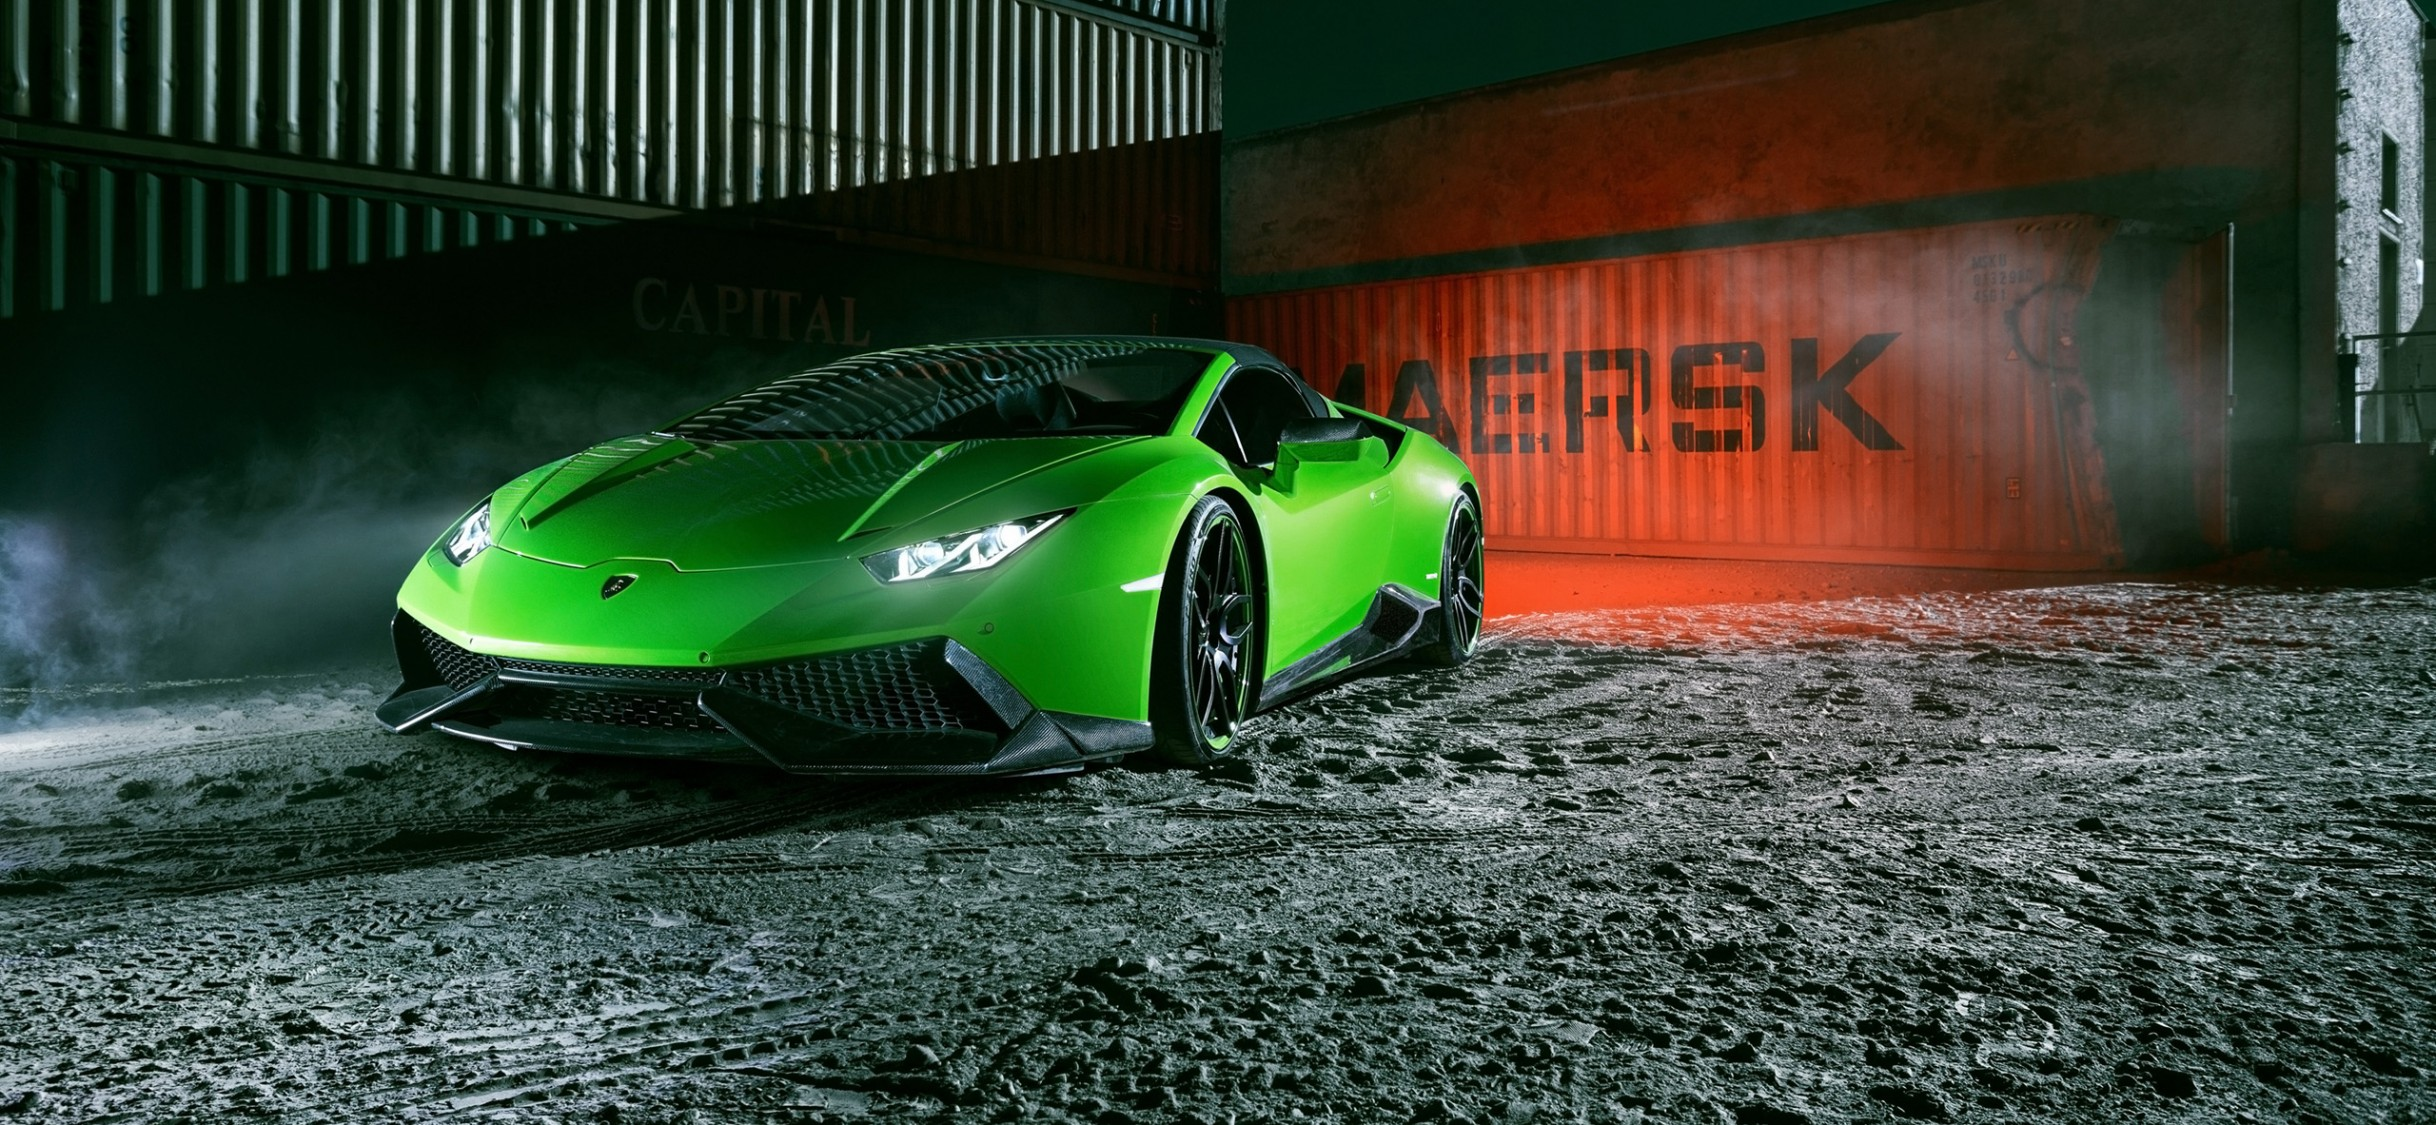 Best Lamborghini Huracan Hd Wallpaper For Desktop And Mobiles Iphone